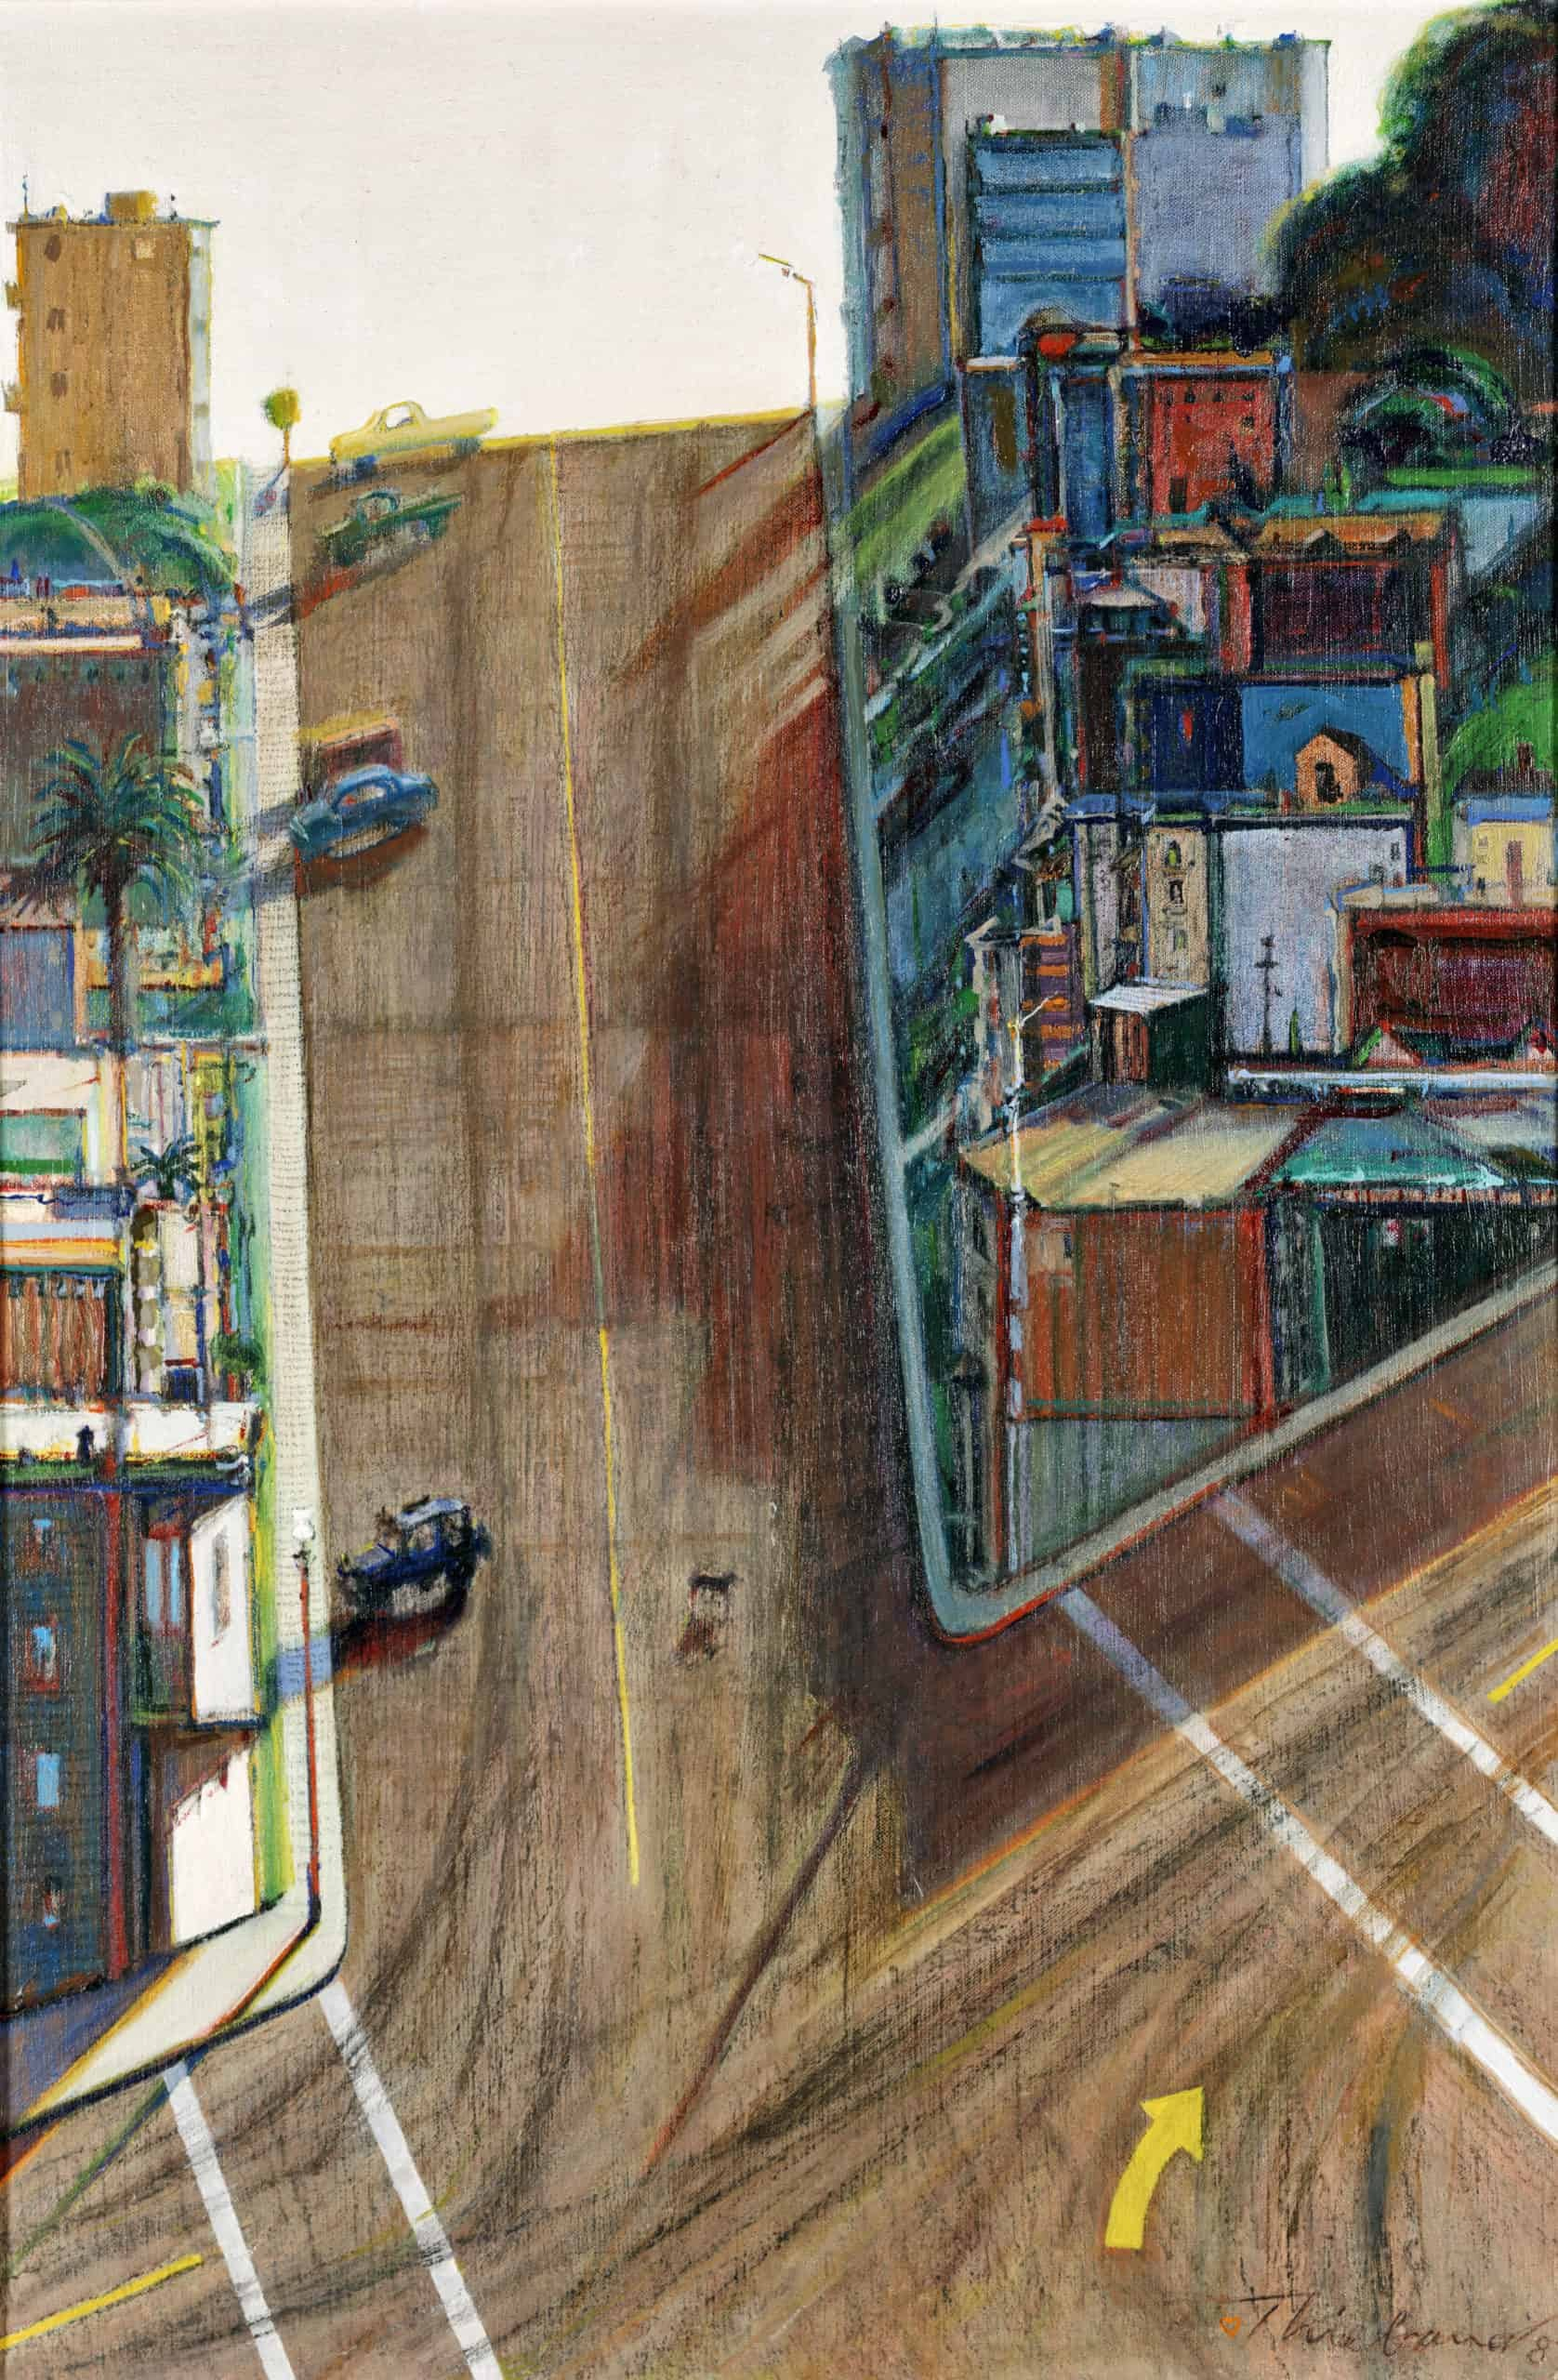 Wayne Thiebaud, Street and Shadow, 1982–1983/1996. Oil on linen, 35 3/4 x 23 3/4 in. Crocker Art Museum, gift of the Artist's family, 1996.3. © 2020 Wayne Thiebaud / Licensed by VAGA at Artists Rights Society (ARS), NY.